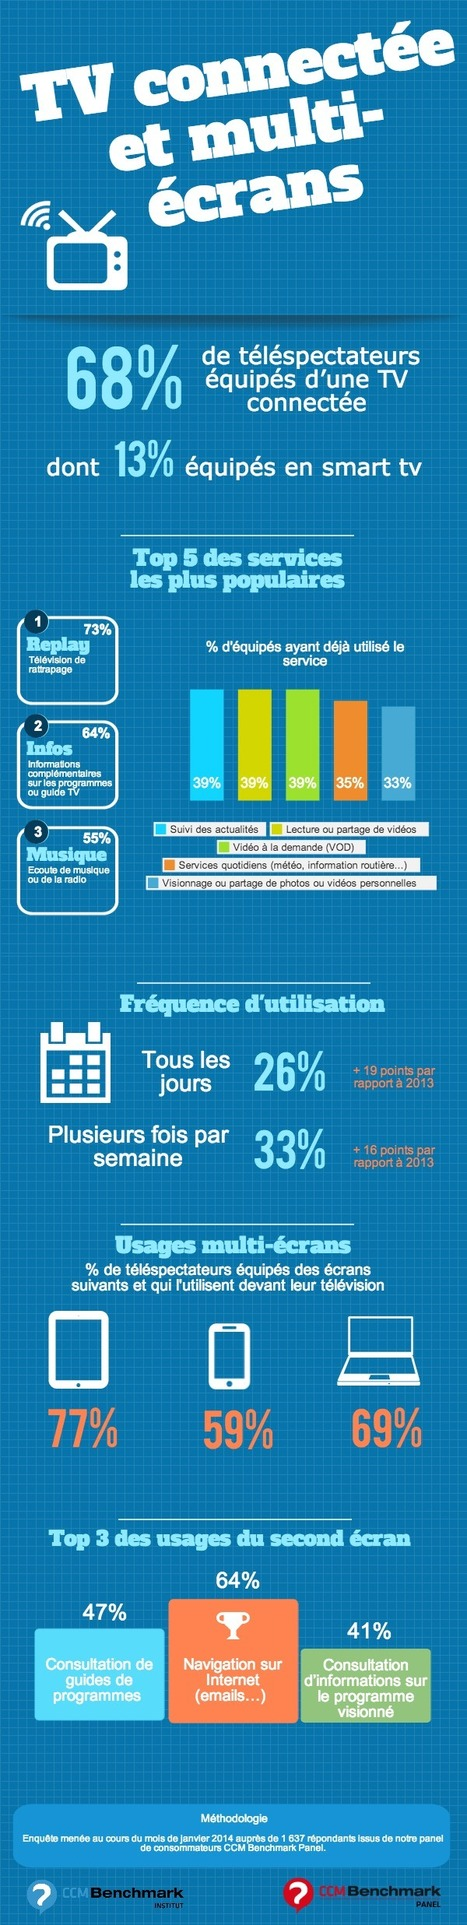 Infographie : TV connectée et multi-écrans | TV - WEB | Scoop.it